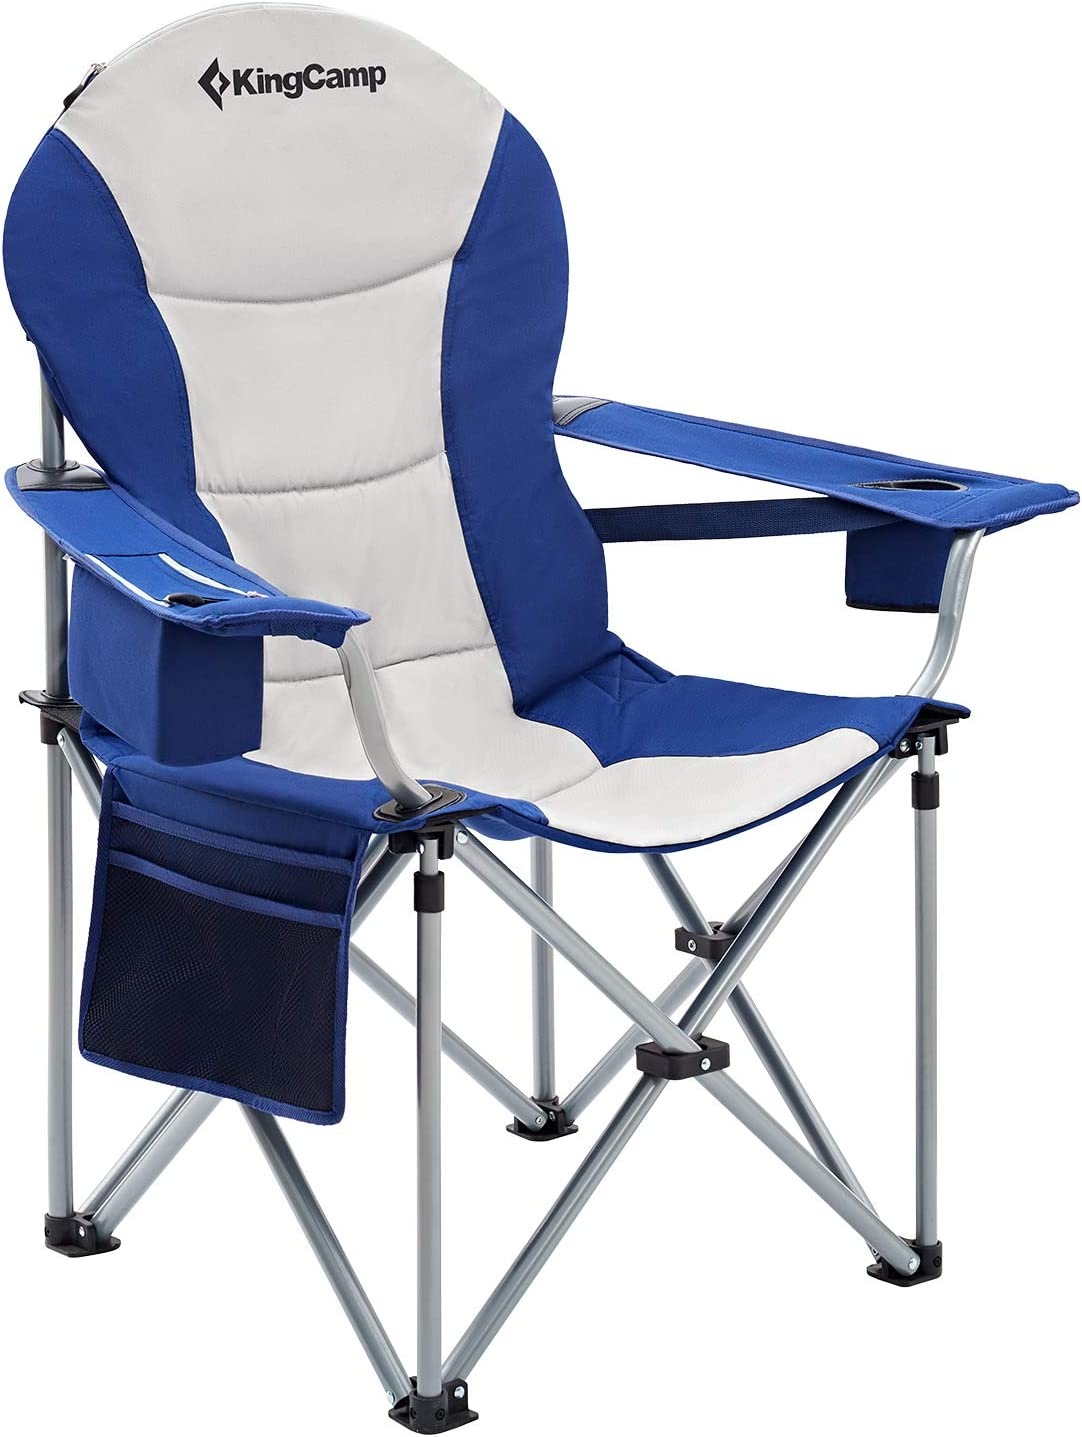 KIngCamp camping chair for bad back